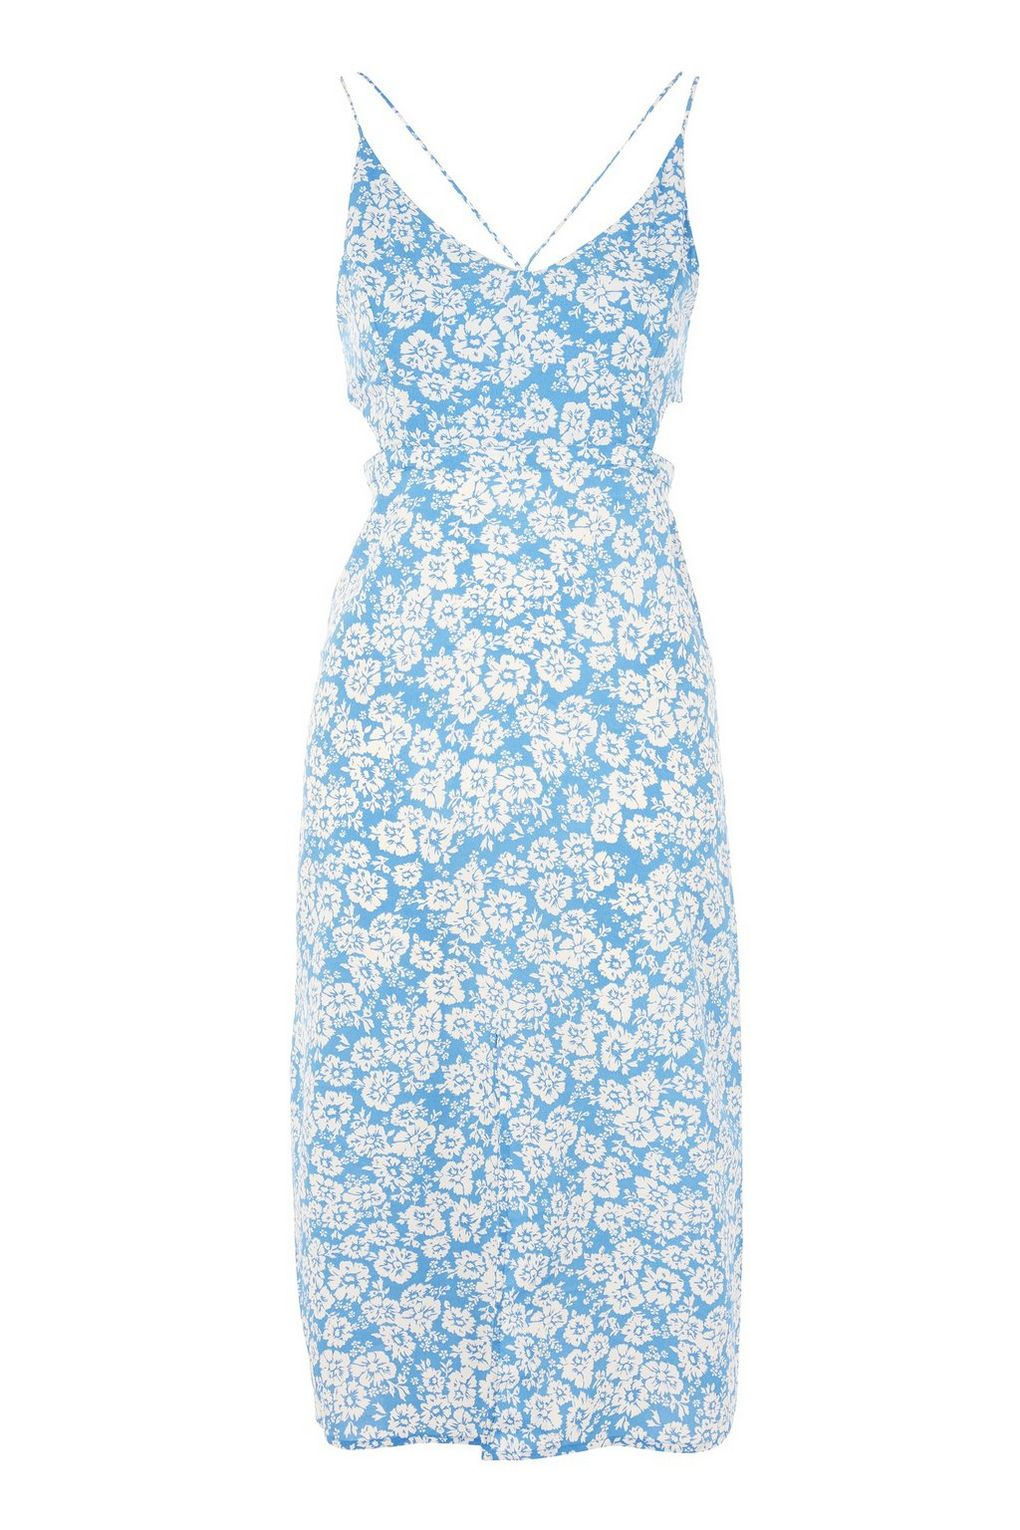 Topshop New Blue White Womens Size 4 Cutout Floral Sheath Dress 75